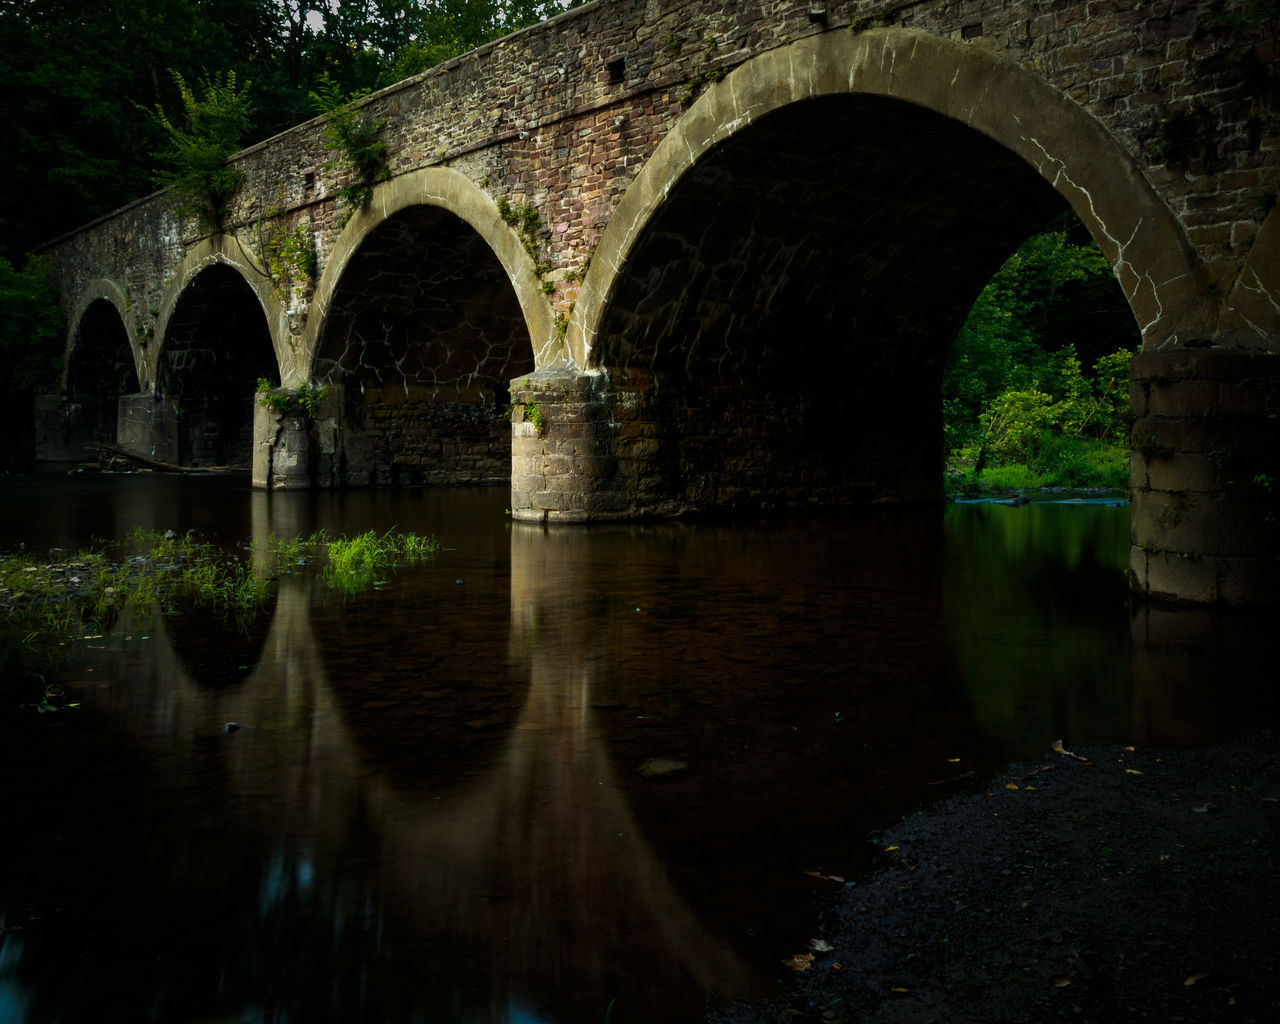 arch, bridge - man made structure, architecture, arch bridge, reflection, connection, water, built structure, no people, outdoors, day, tree, nature